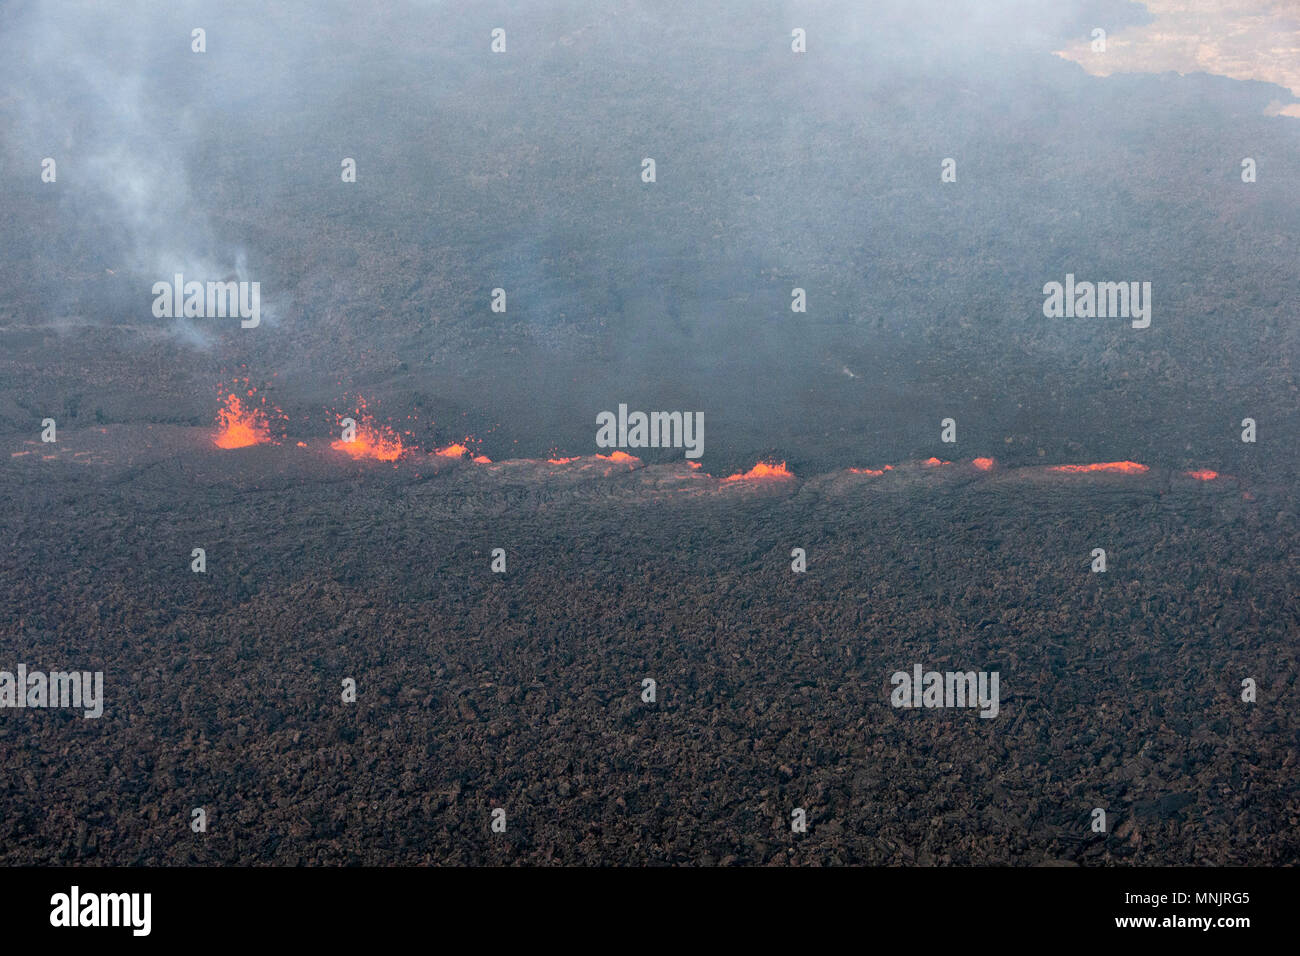 Lava and poison gases bubble out from a fissure caused by the eruption of the Kilauea volcano at Leilani Estates May 17, 2018 in Pahoa, Hawaii. The recent eruption continues destroying homes, forcing evacuations and spewing lava and poison gas on the Big Island of Hawaii. - Stock Image